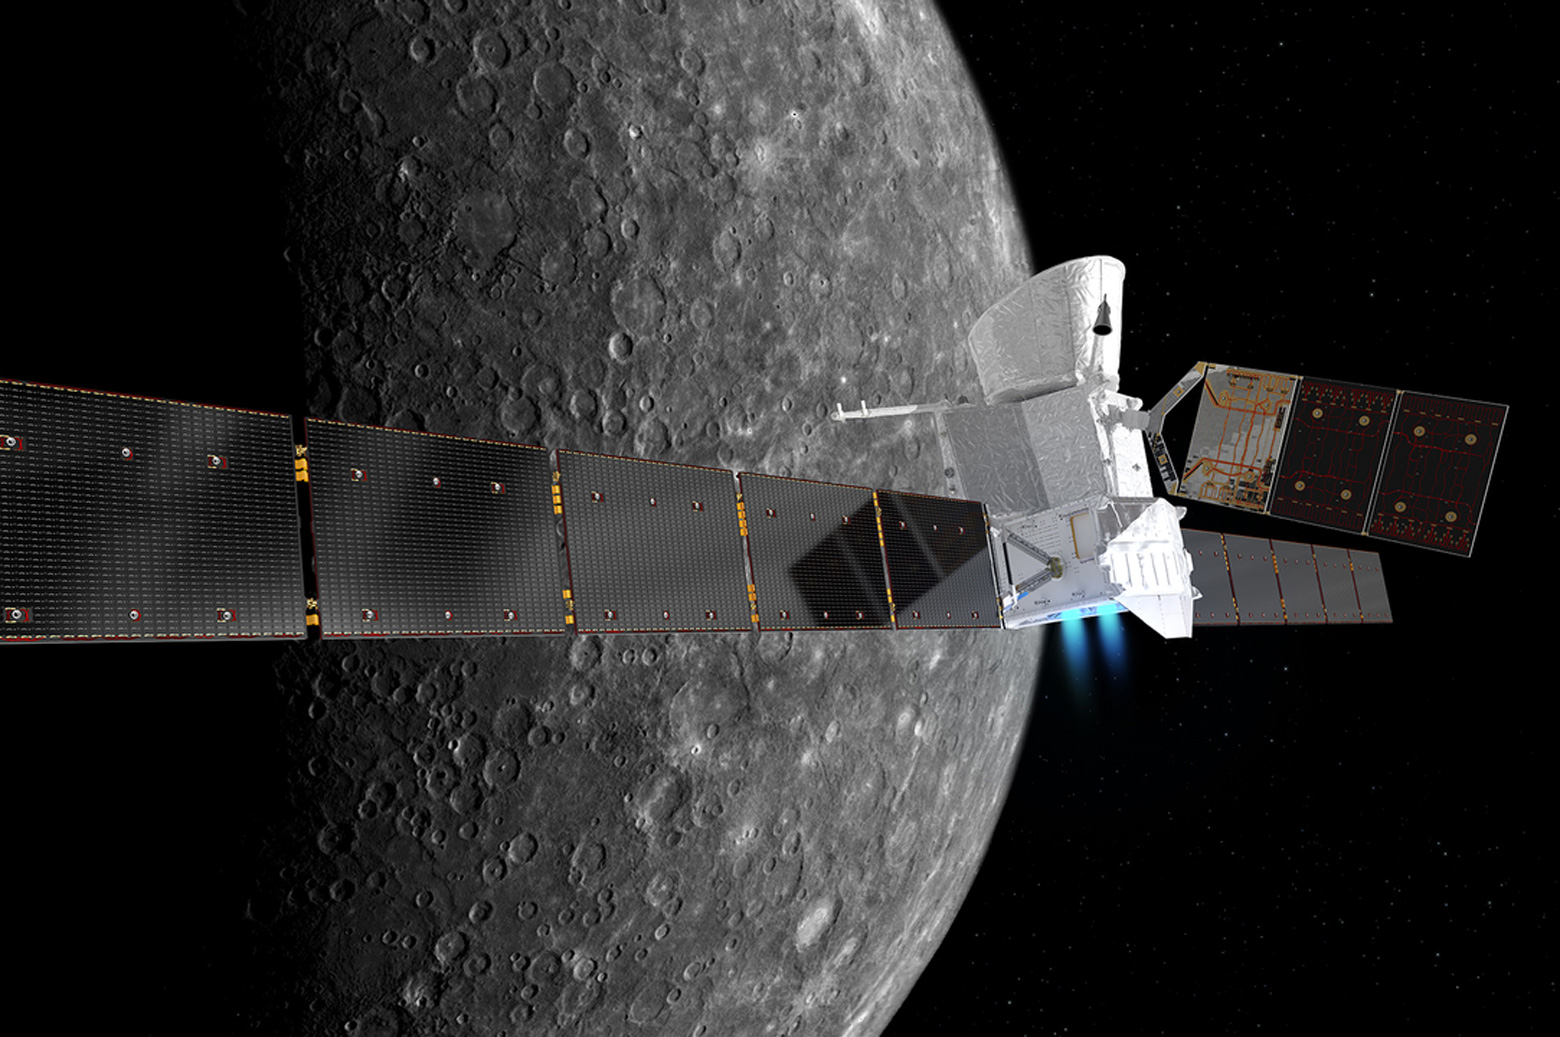 The BepiColombo spacecraft in cruise configuration as it orbits Mercury. Credit: European Space Agency